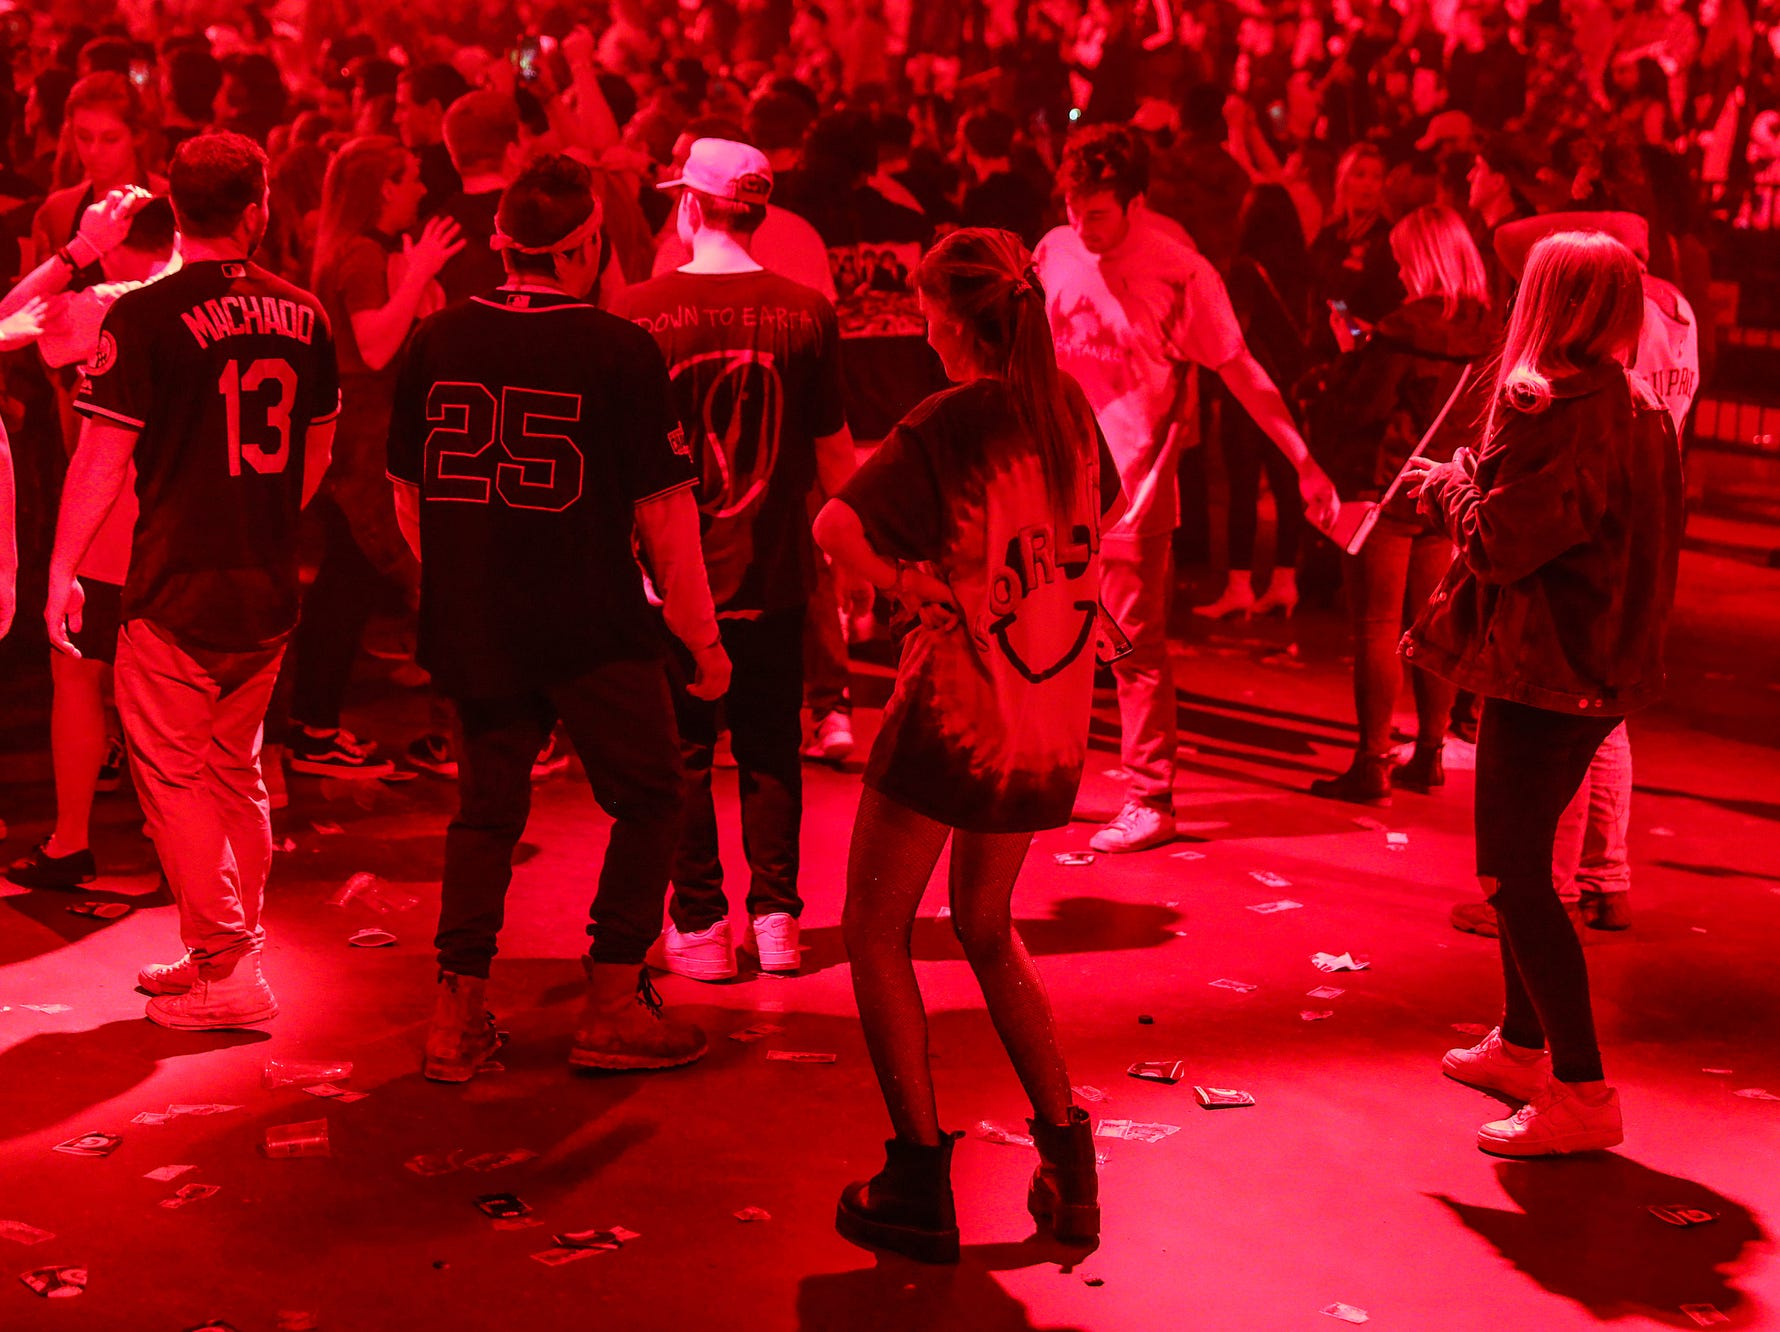 Fans on the floor section dance as Travis Scott performs on his Astroworld Tour at Banker's Life Fieldhouse in Indianapolis on Wednesday, Feb. 20, 2018.